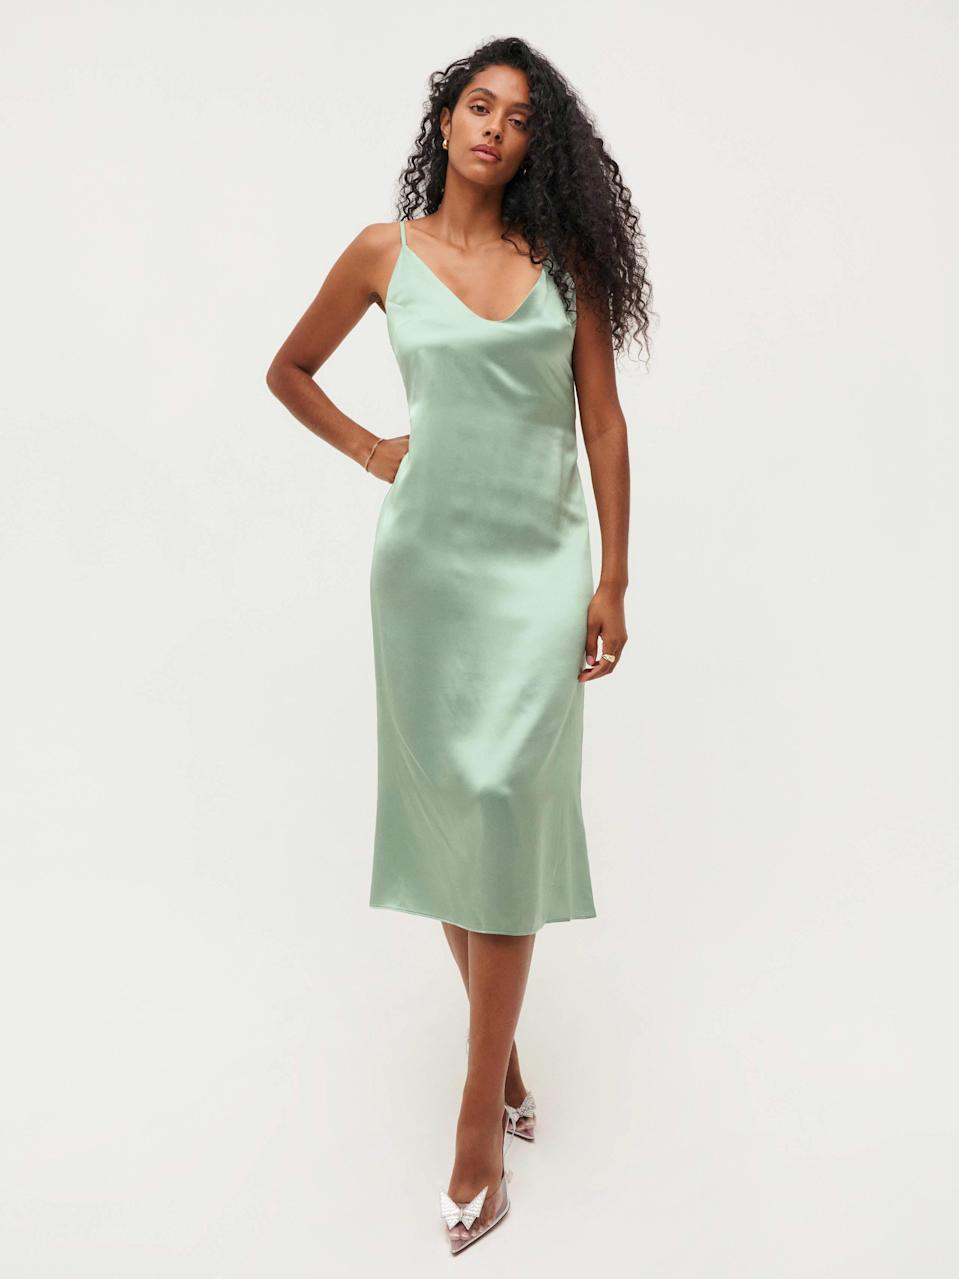 """This timeless slip dress doesn't scream """"bridesmaid"""" at all—so much so that it would work for a date—and we're here for it. $198, Reformation. <a href=""""https://www.thereformation.com/products/sofia-dress?color=Celadon"""" rel=""""nofollow noopener"""" target=""""_blank"""" data-ylk=""""slk:Get it now!"""" class=""""link rapid-noclick-resp"""">Get it now!</a>"""